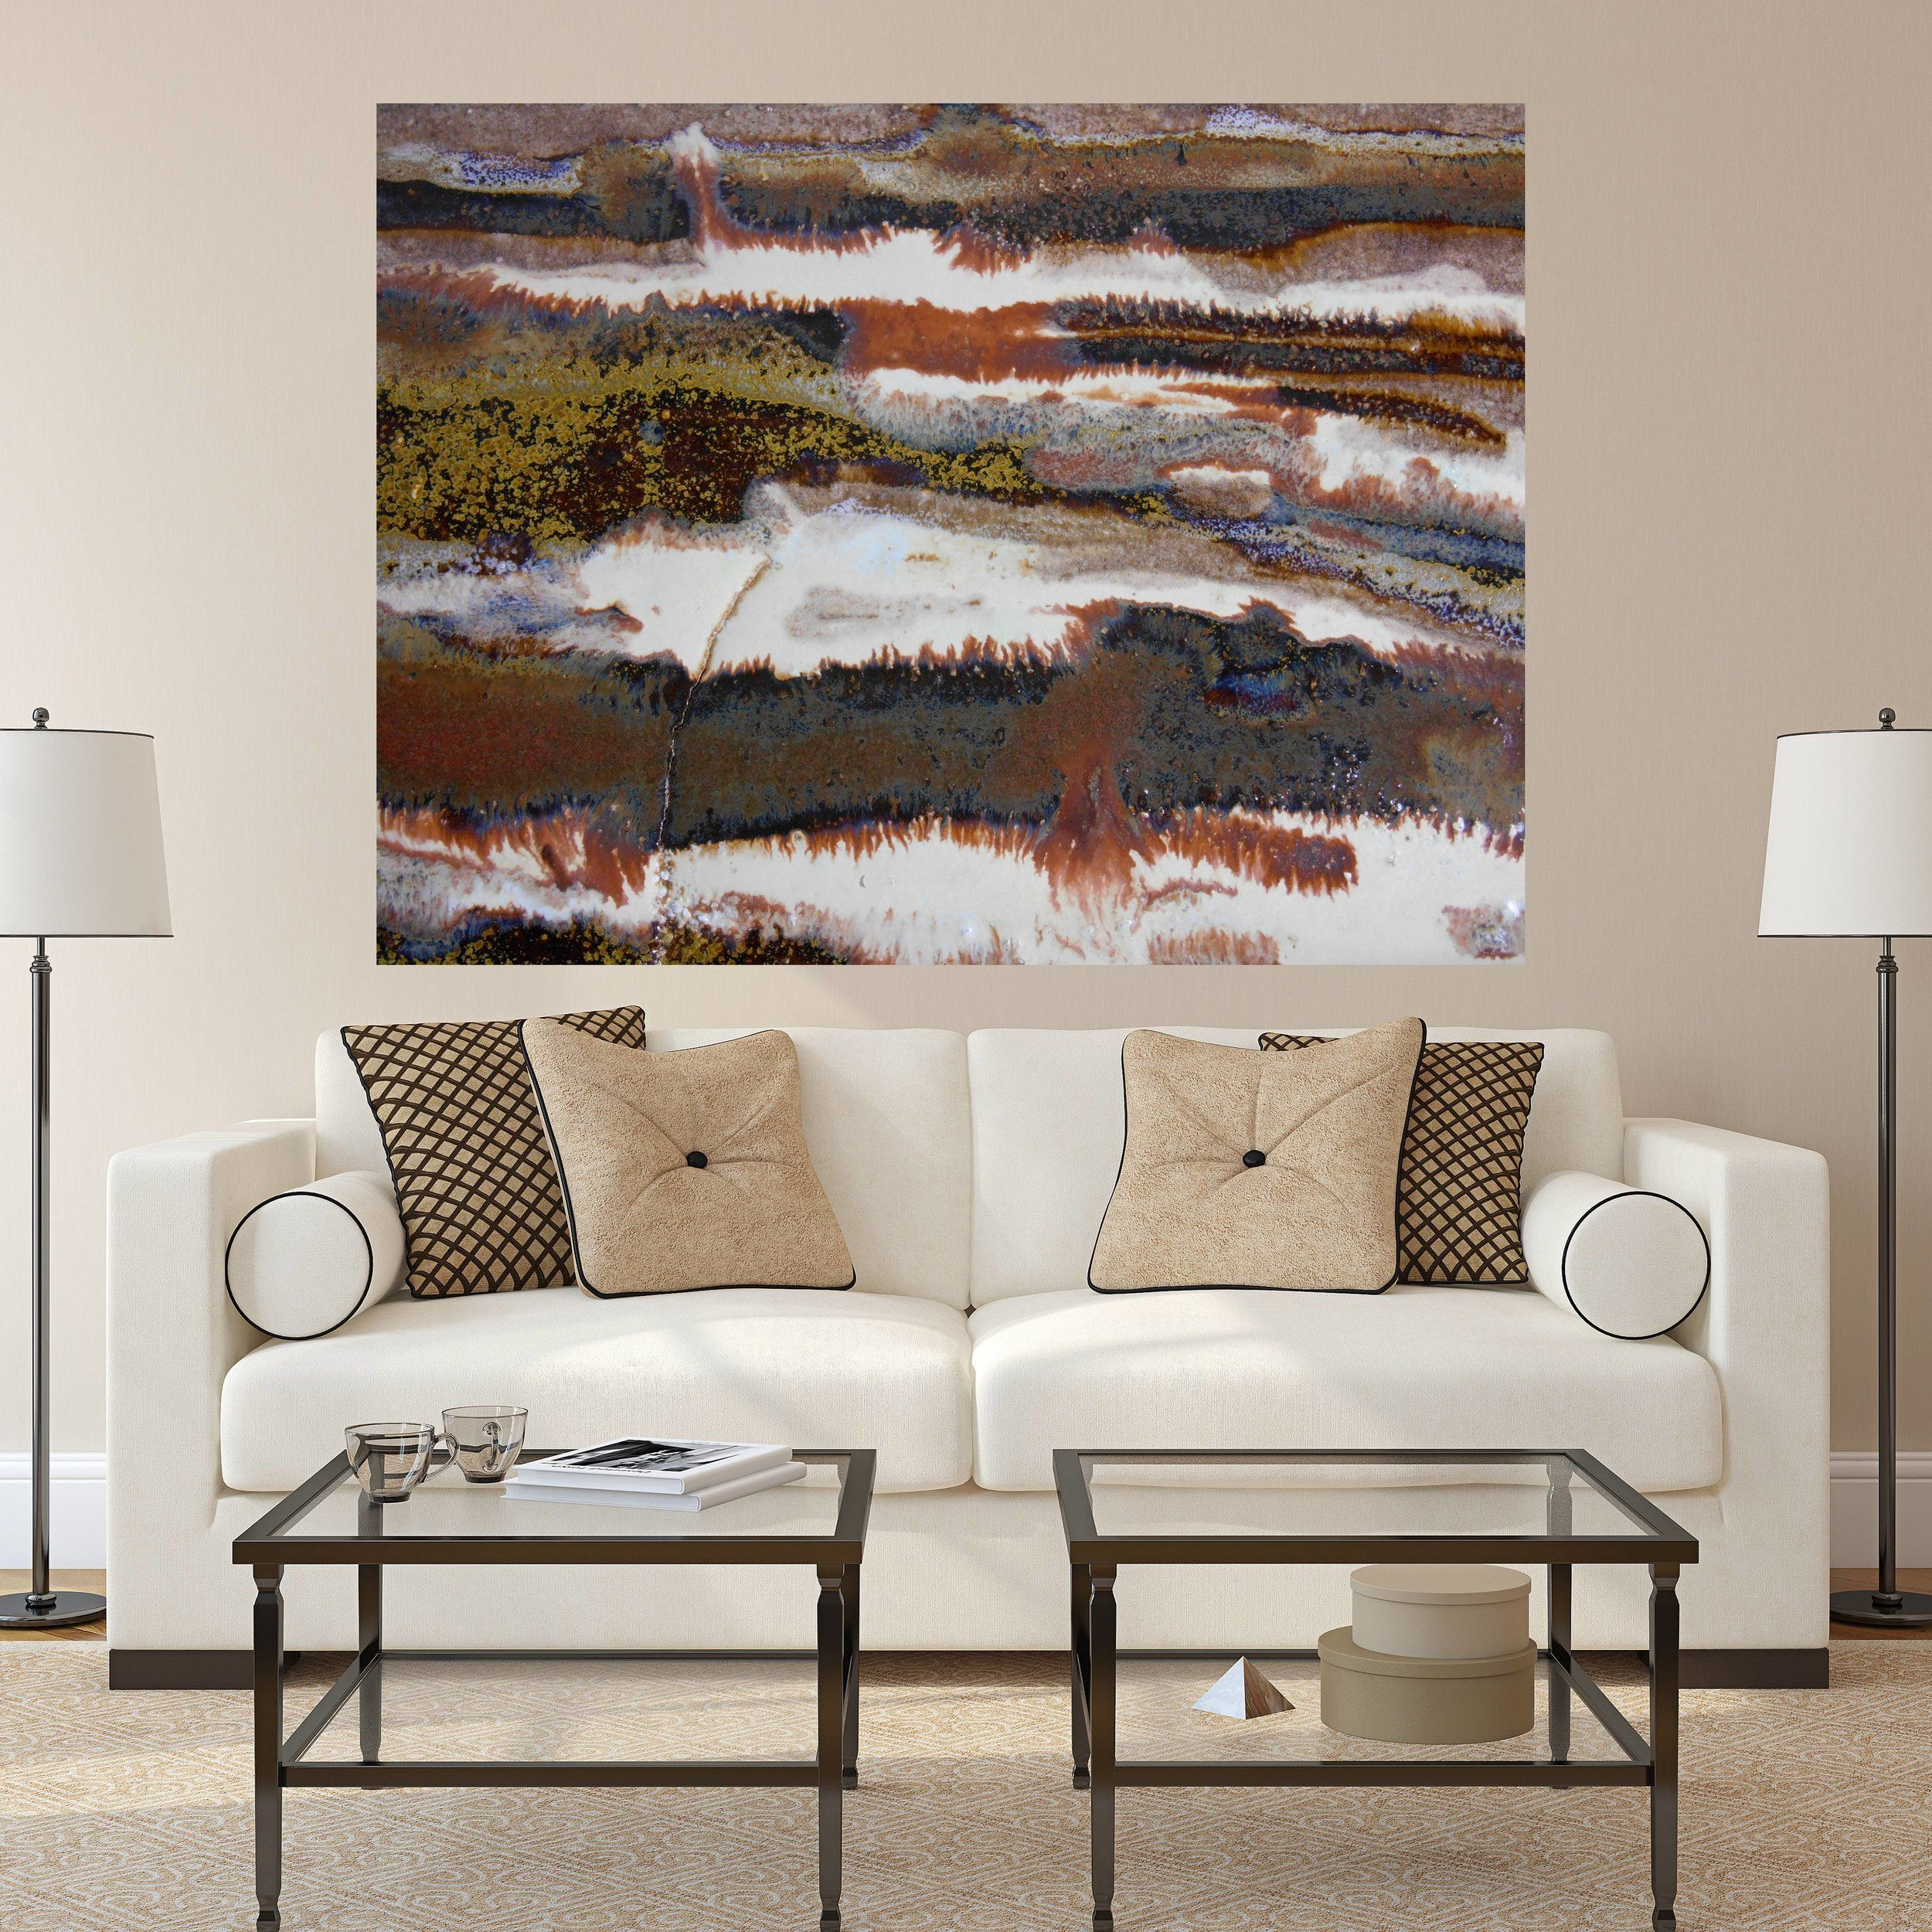 How To Create A Stylish Living Room With Colorful Artwork Large